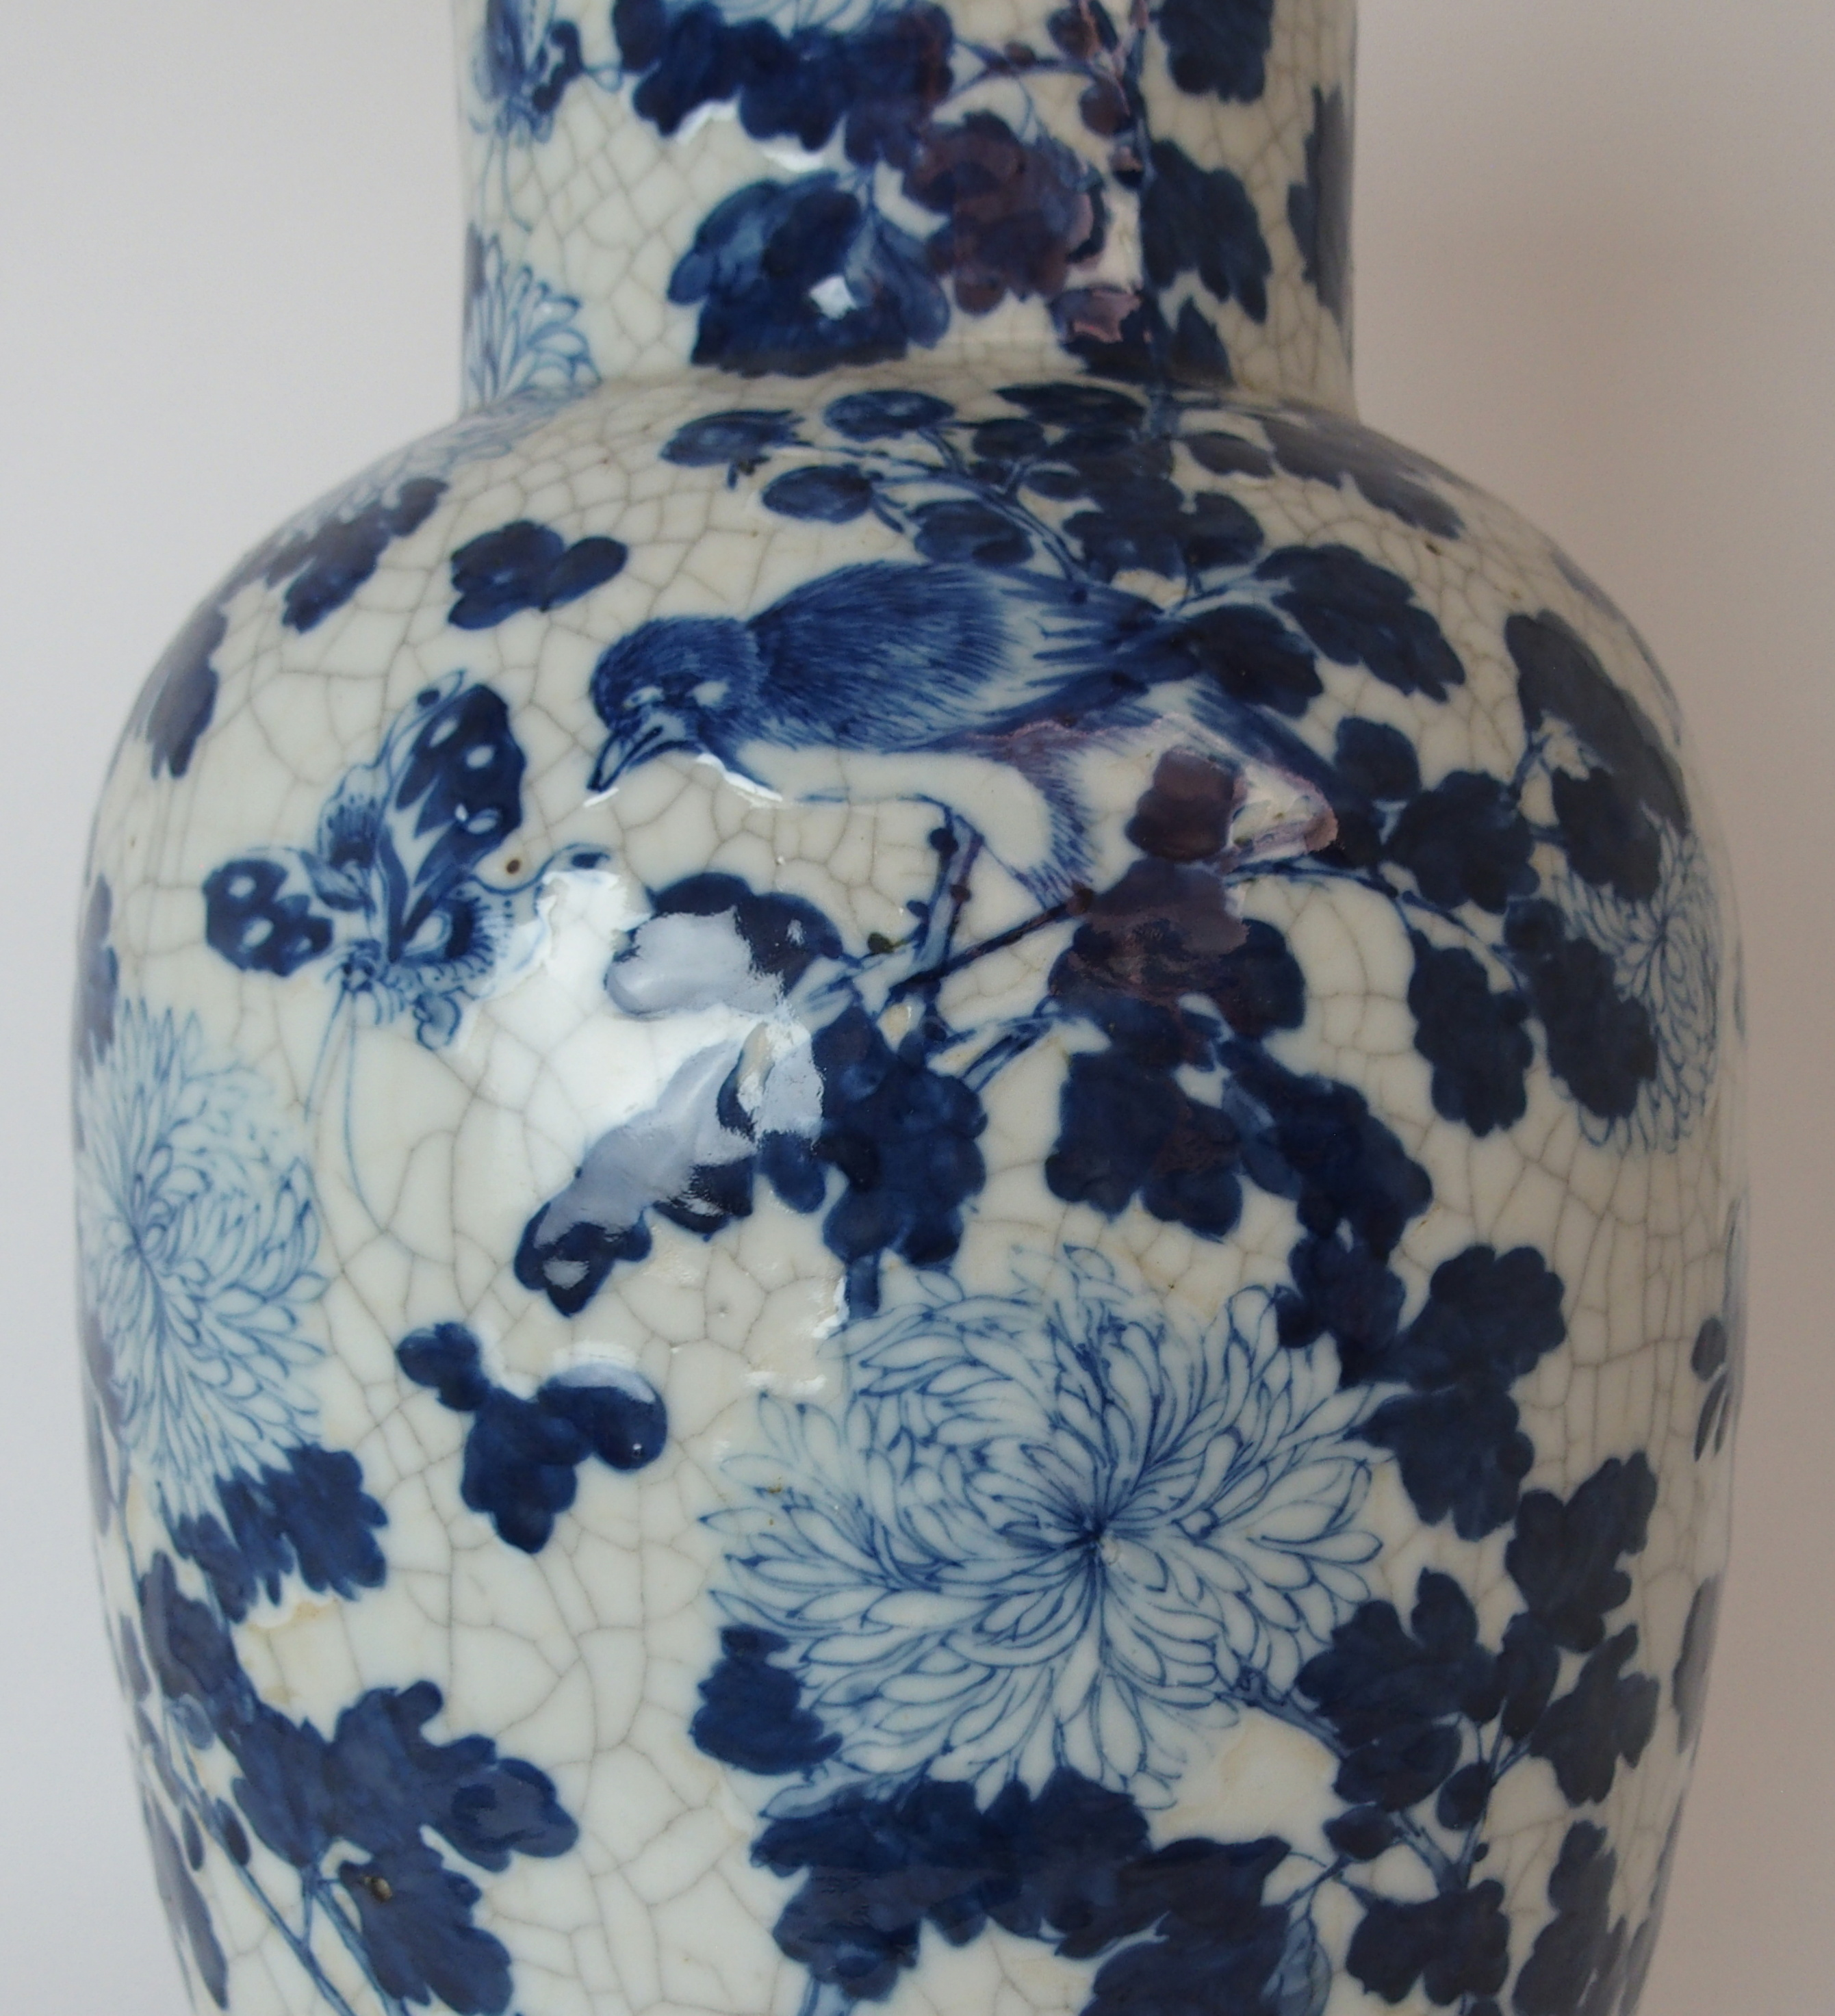 A LARGE CHINESE BLUE AND WHITE MOULDED VASE painted with birds and bats amongst peonies - Image 3 of 11